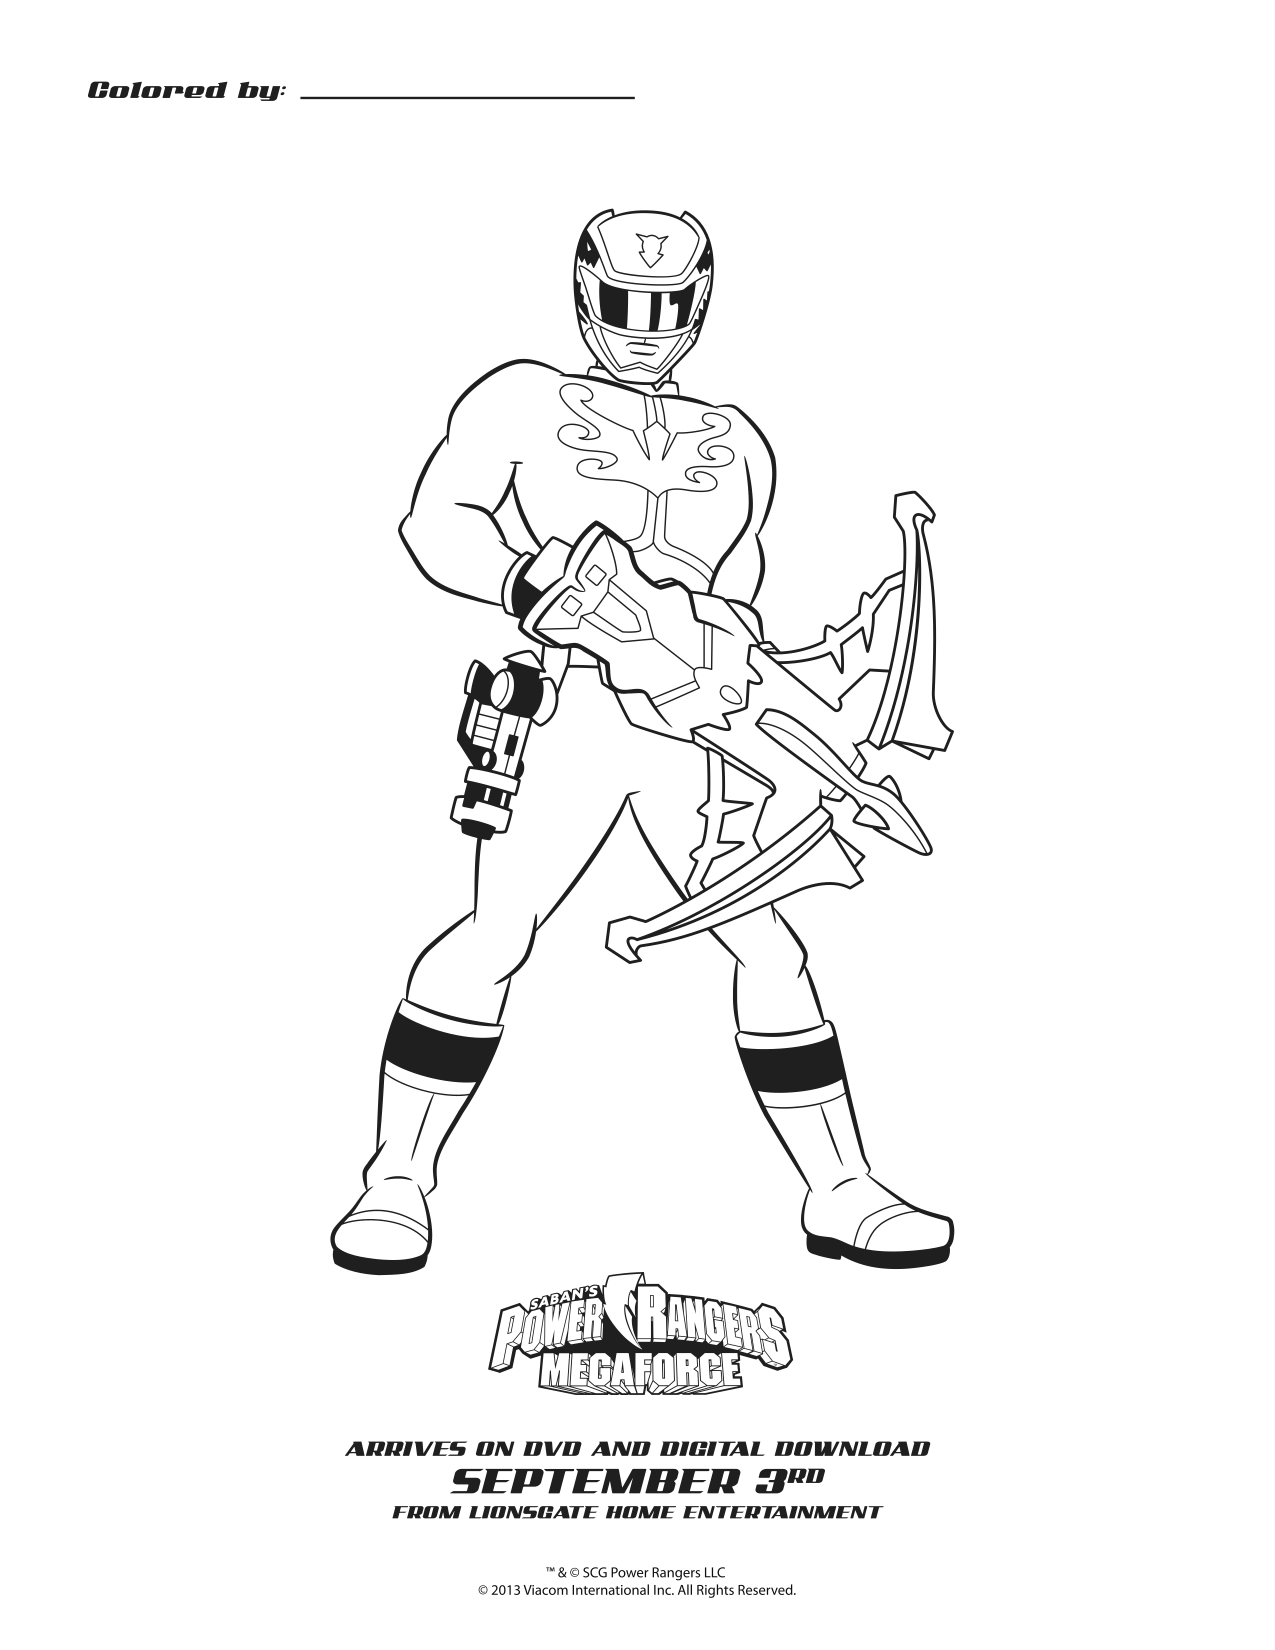 Power Rangers Megaforce Blue Ranger Coloring Sheet